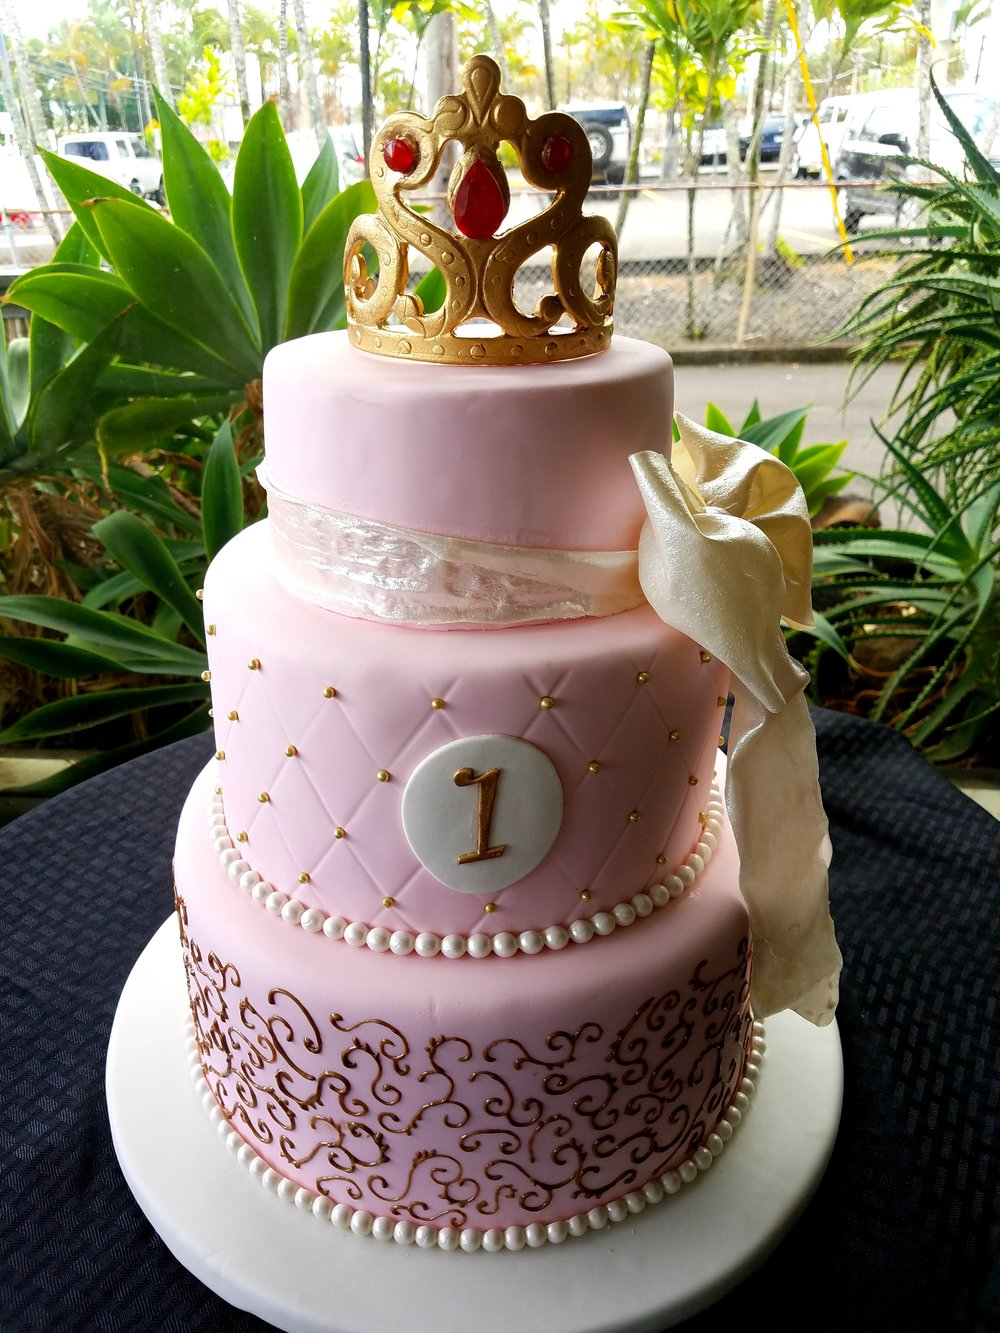 Copy of Three tier pink rolled fondant princess birthday cake with piped gold scroll work, edible sugar bow and gold sugar crown topper Hilo Hawaii Big Island Kailua-Kona